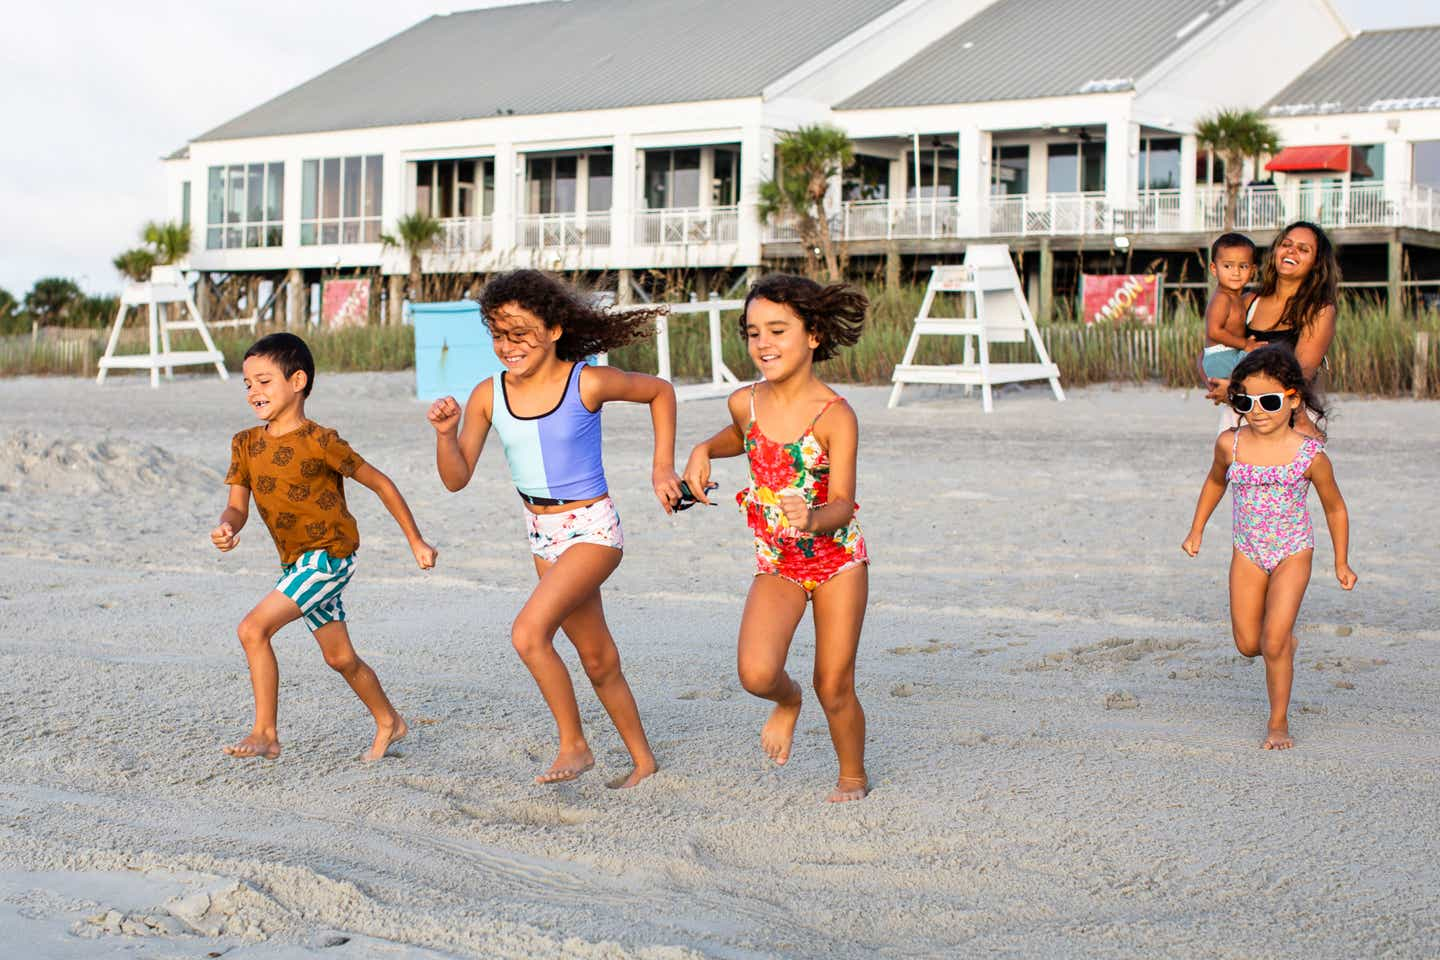 Brenda and her family run from their resort to the beach in swimwear.